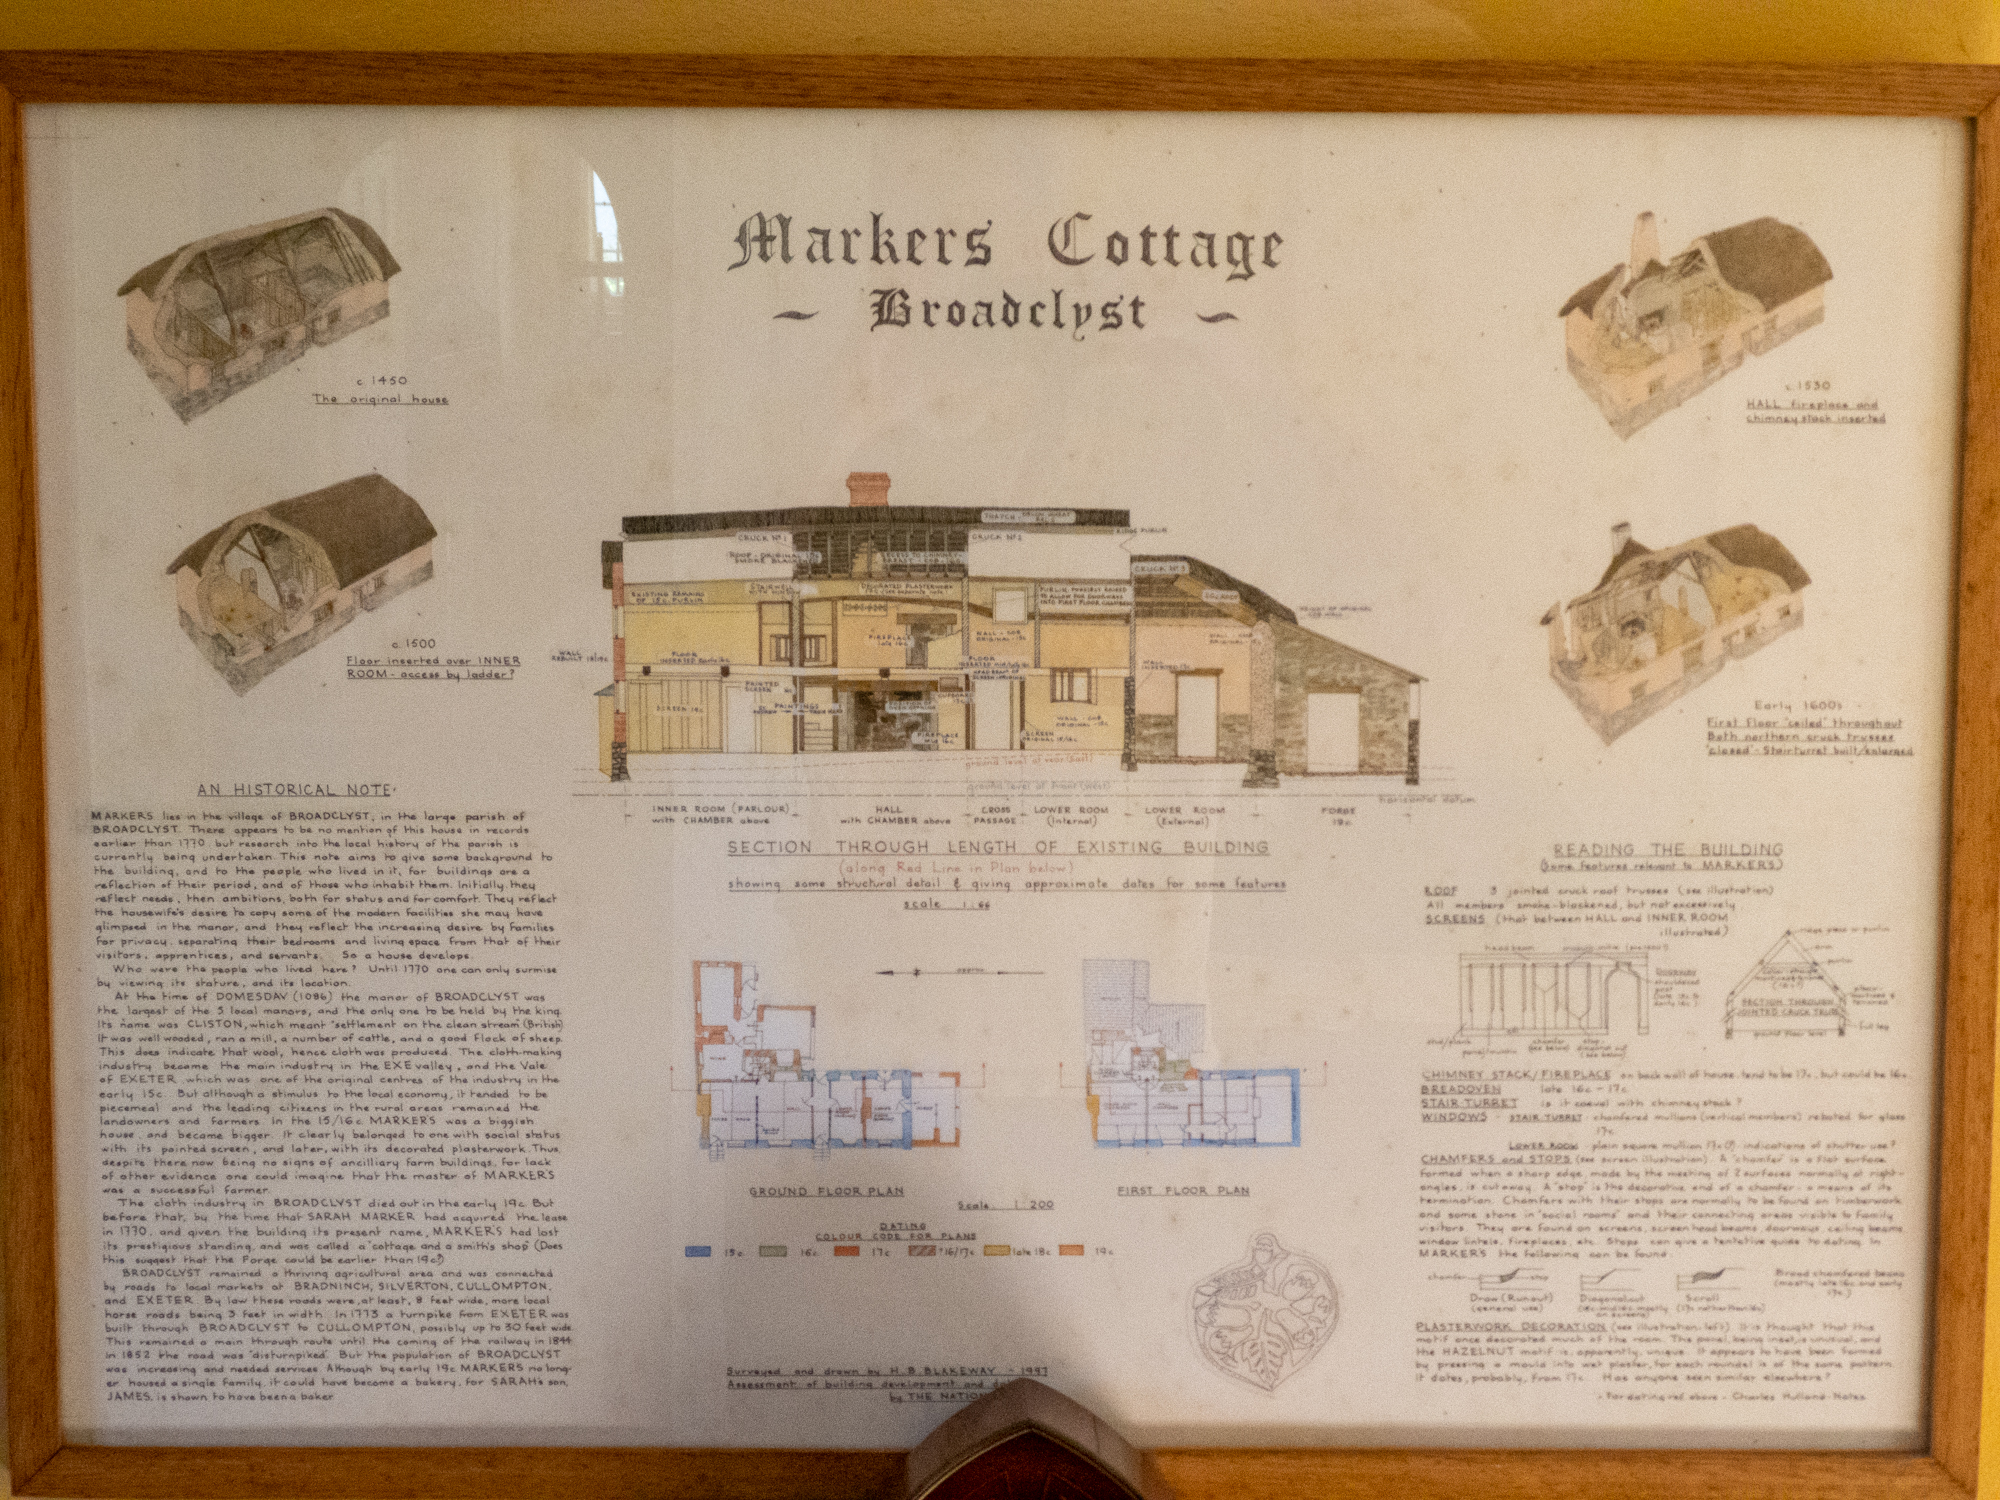 NT Markers Cottage, Broadclyst, Killerton Estate, old interpretation poster in situ